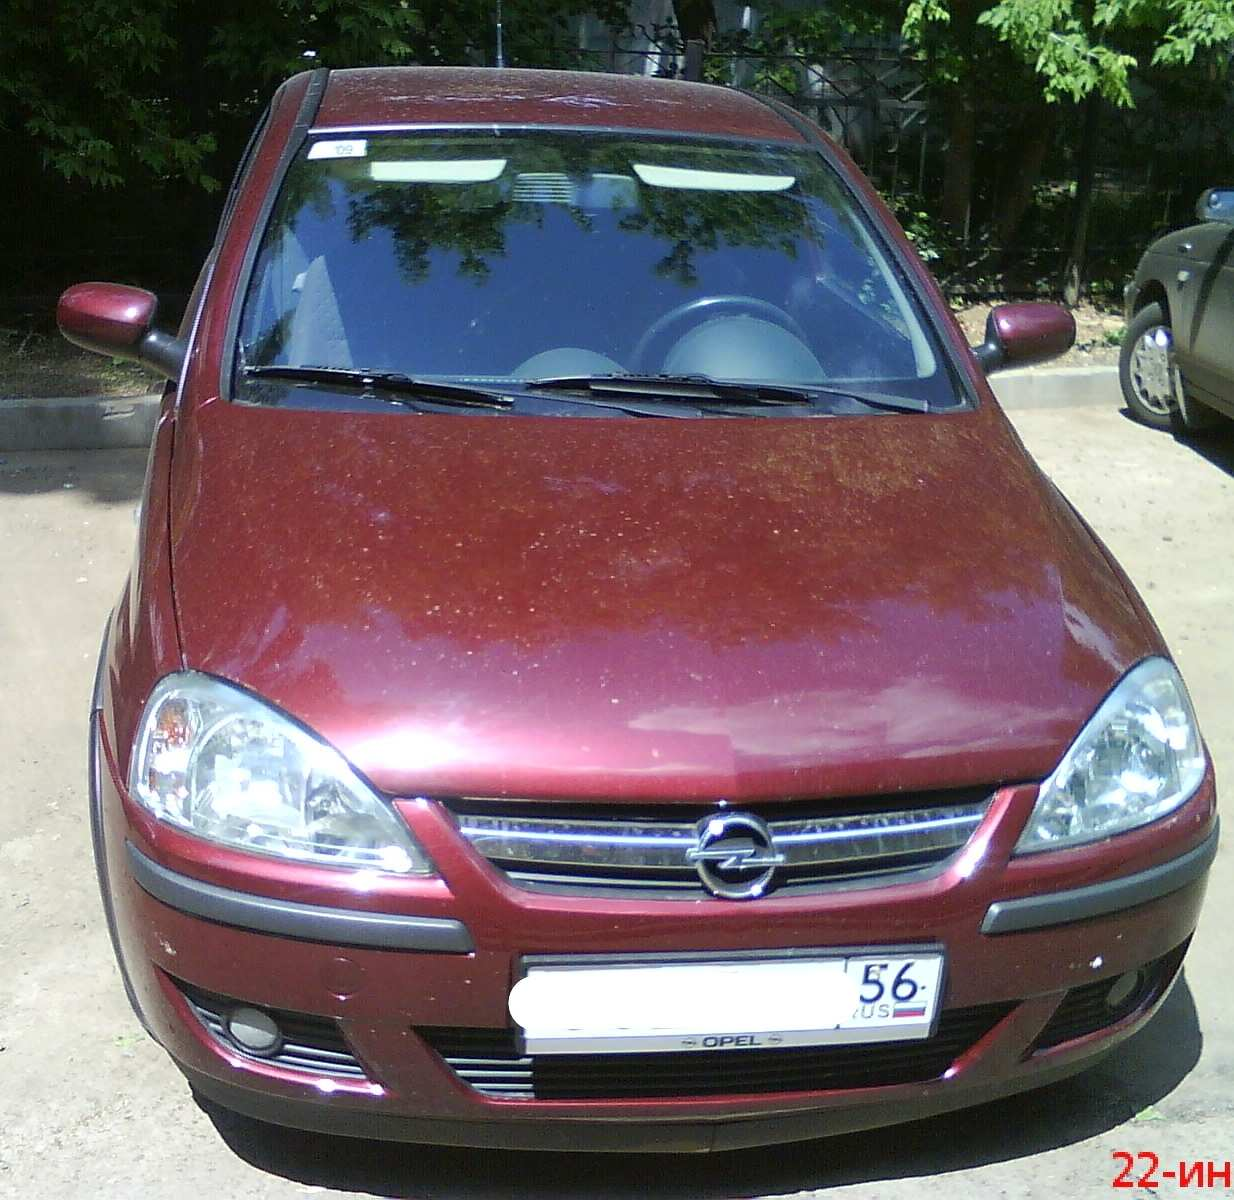 used 2003 opel corsa photos gasoline manual for sale. Black Bedroom Furniture Sets. Home Design Ideas